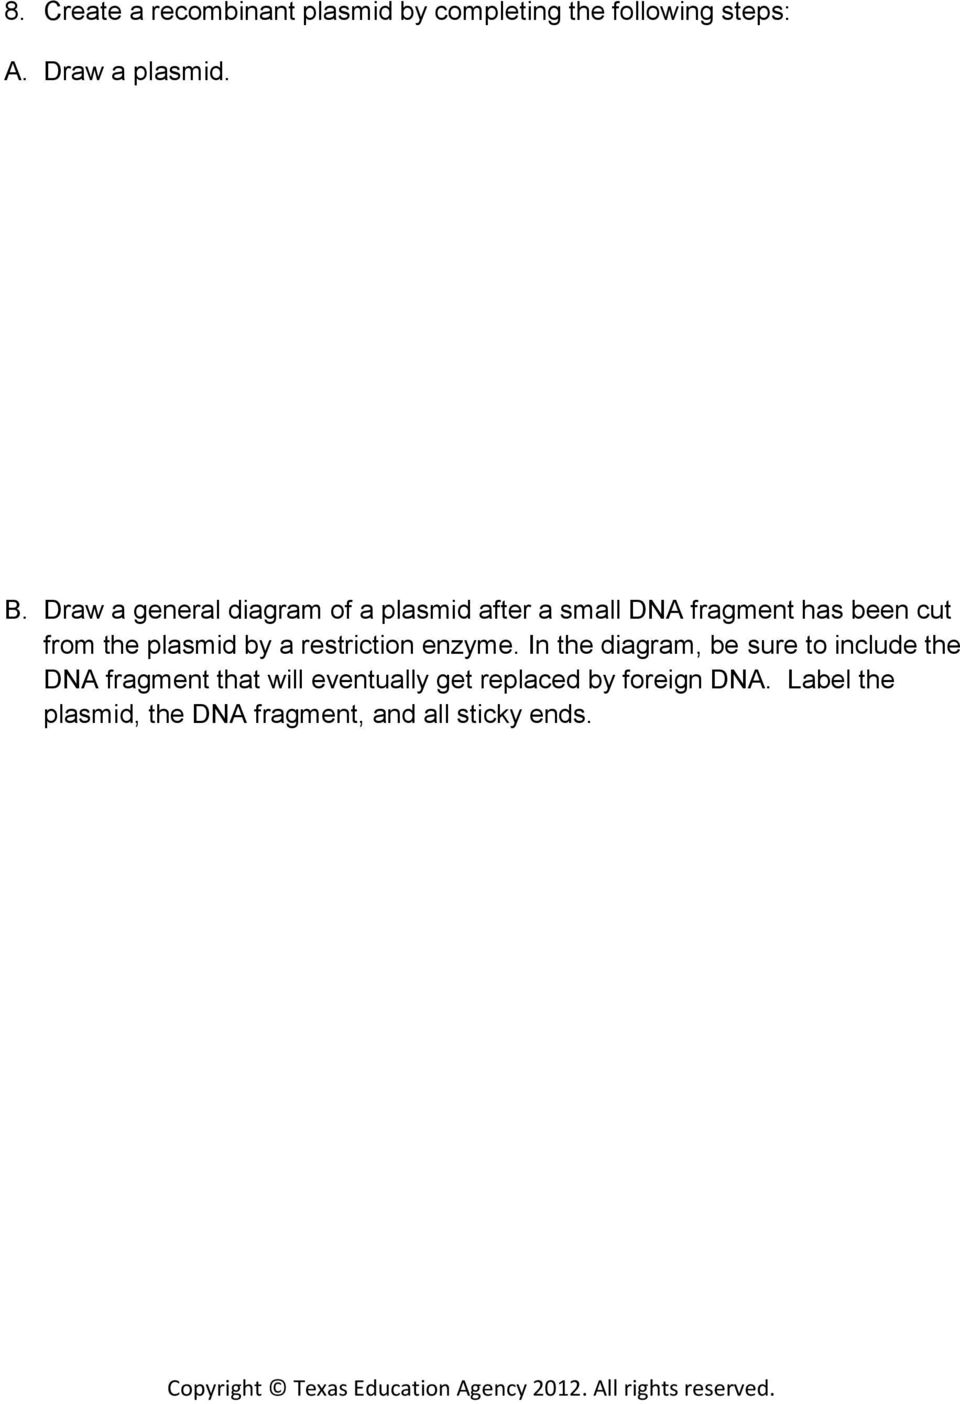 plasmid by a restriction enzyme.